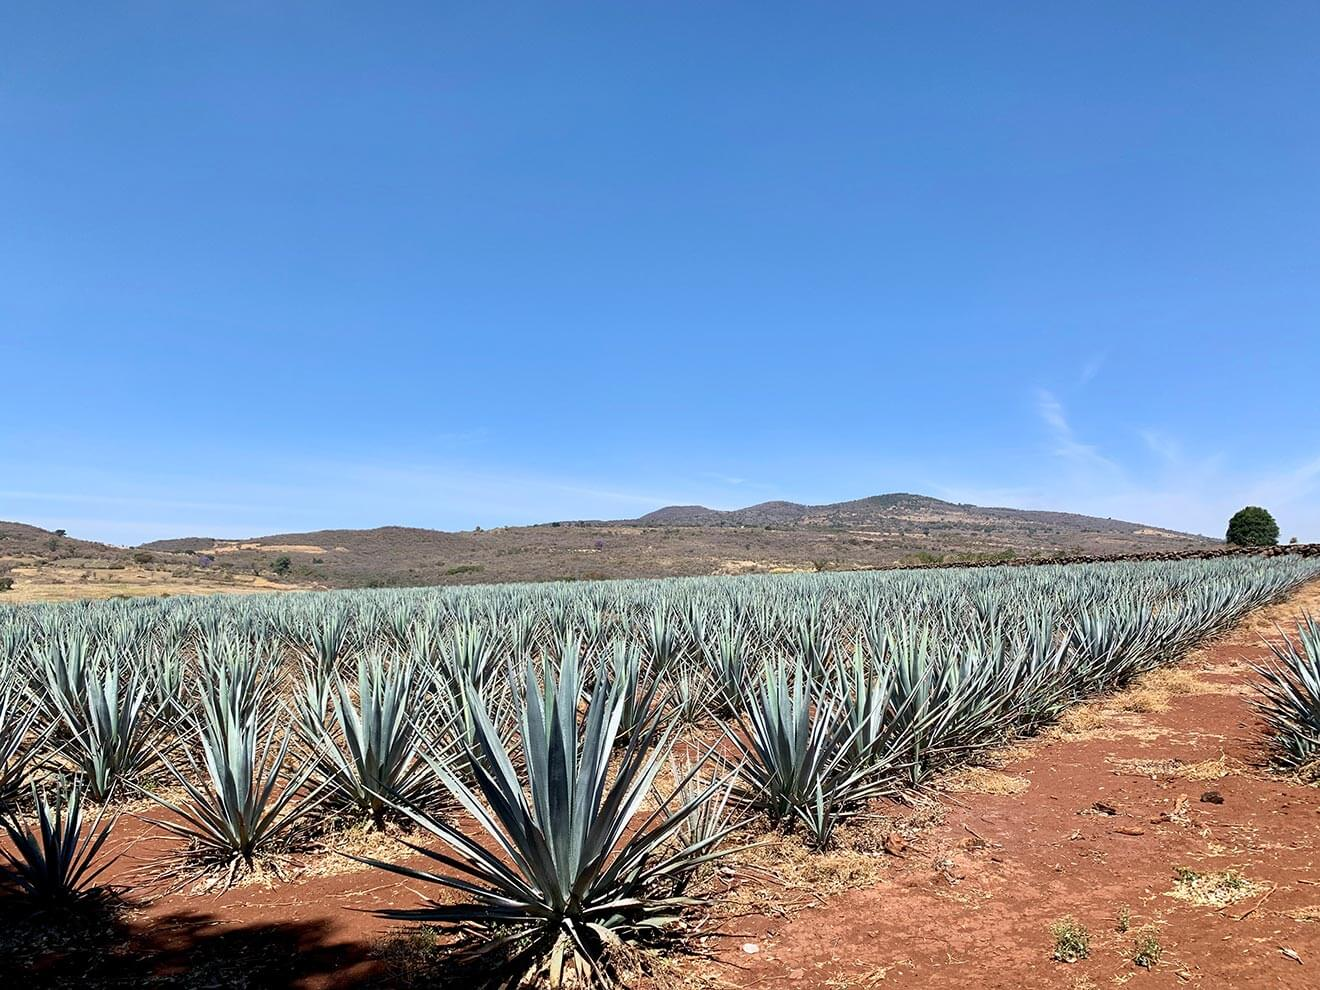 agave field, rows of plants, mountain view